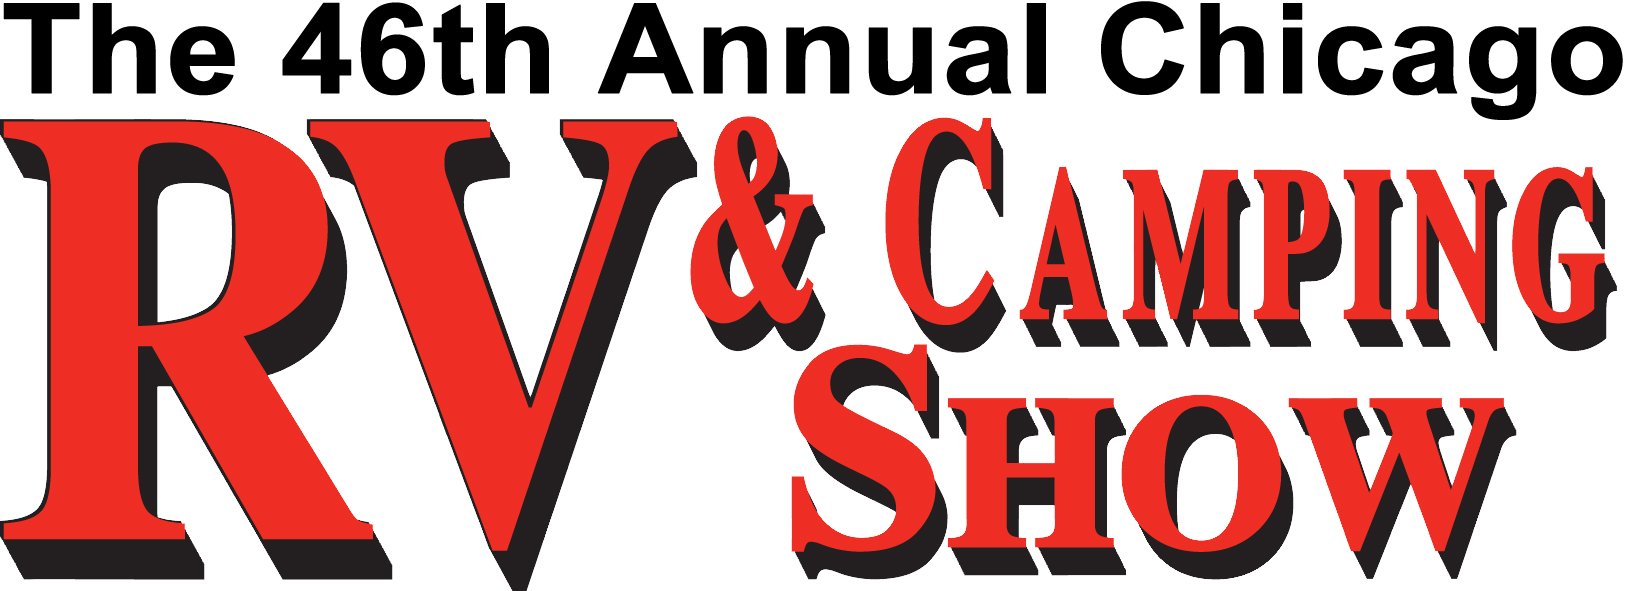 Annual Chicago RV & Camping Show